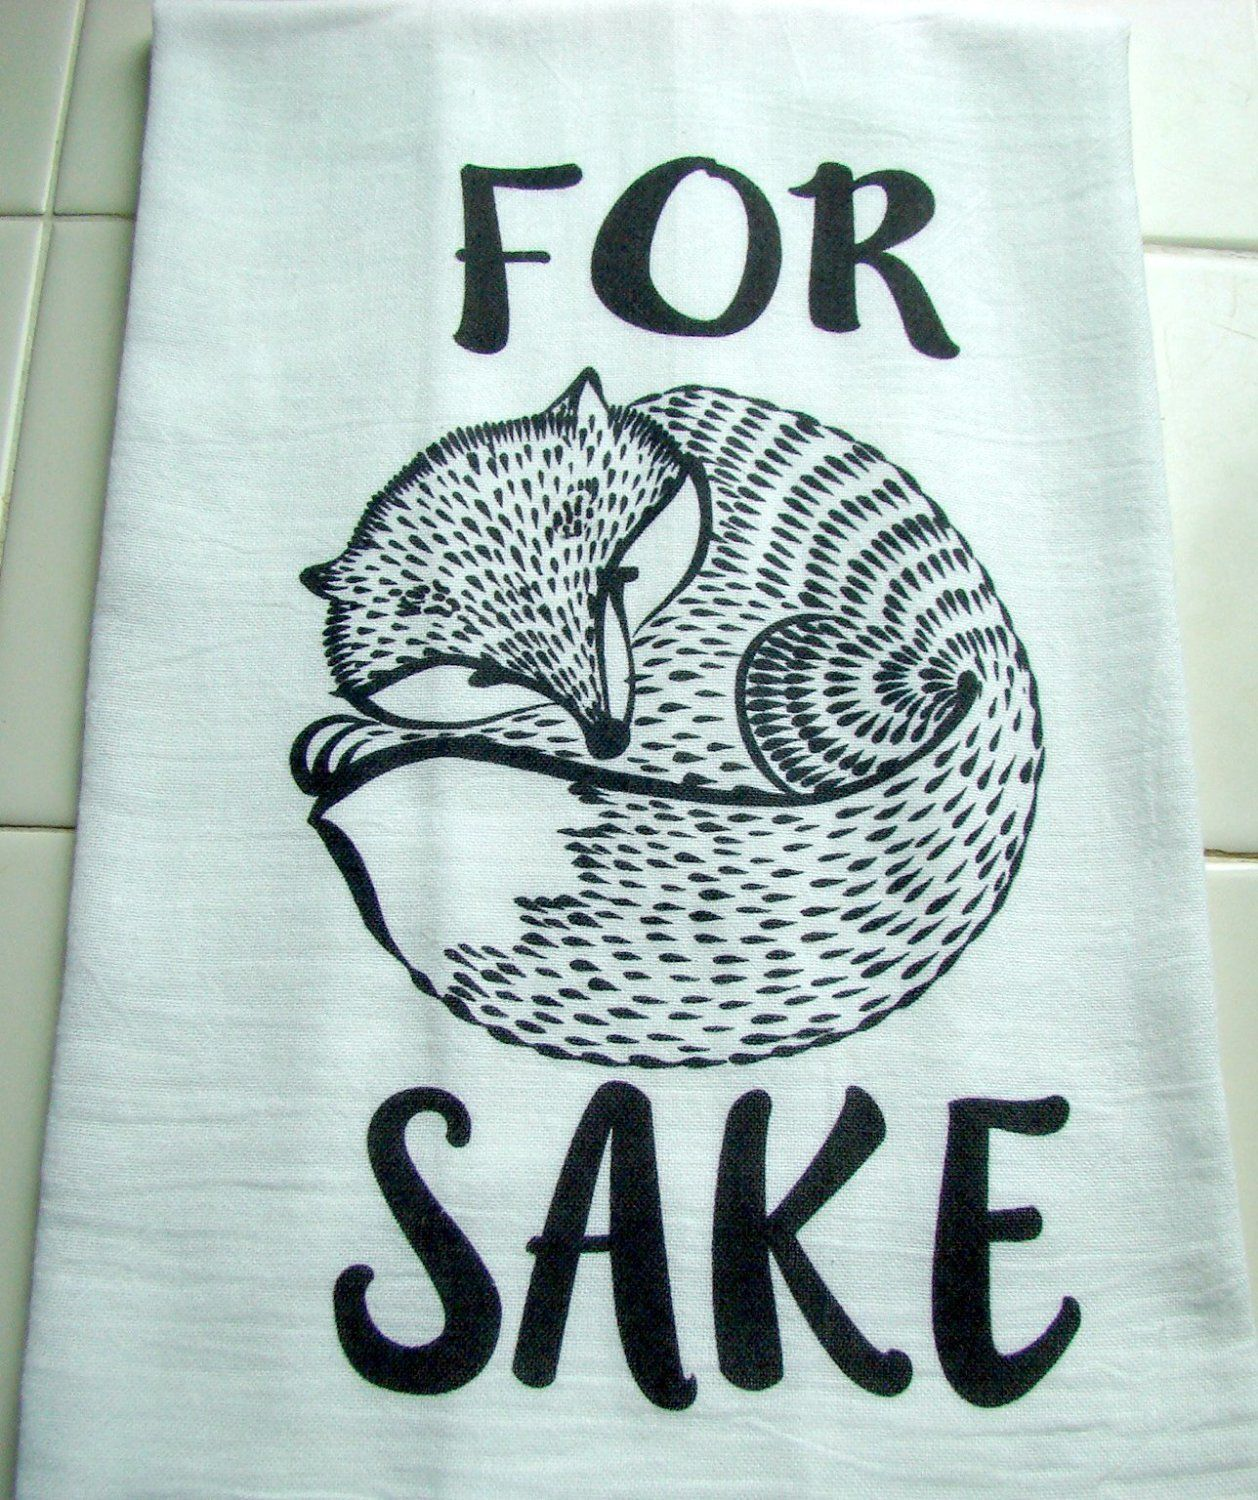 Amazon.com: For Fox SAKE kitchen tea towel Handmade printed graphic ...